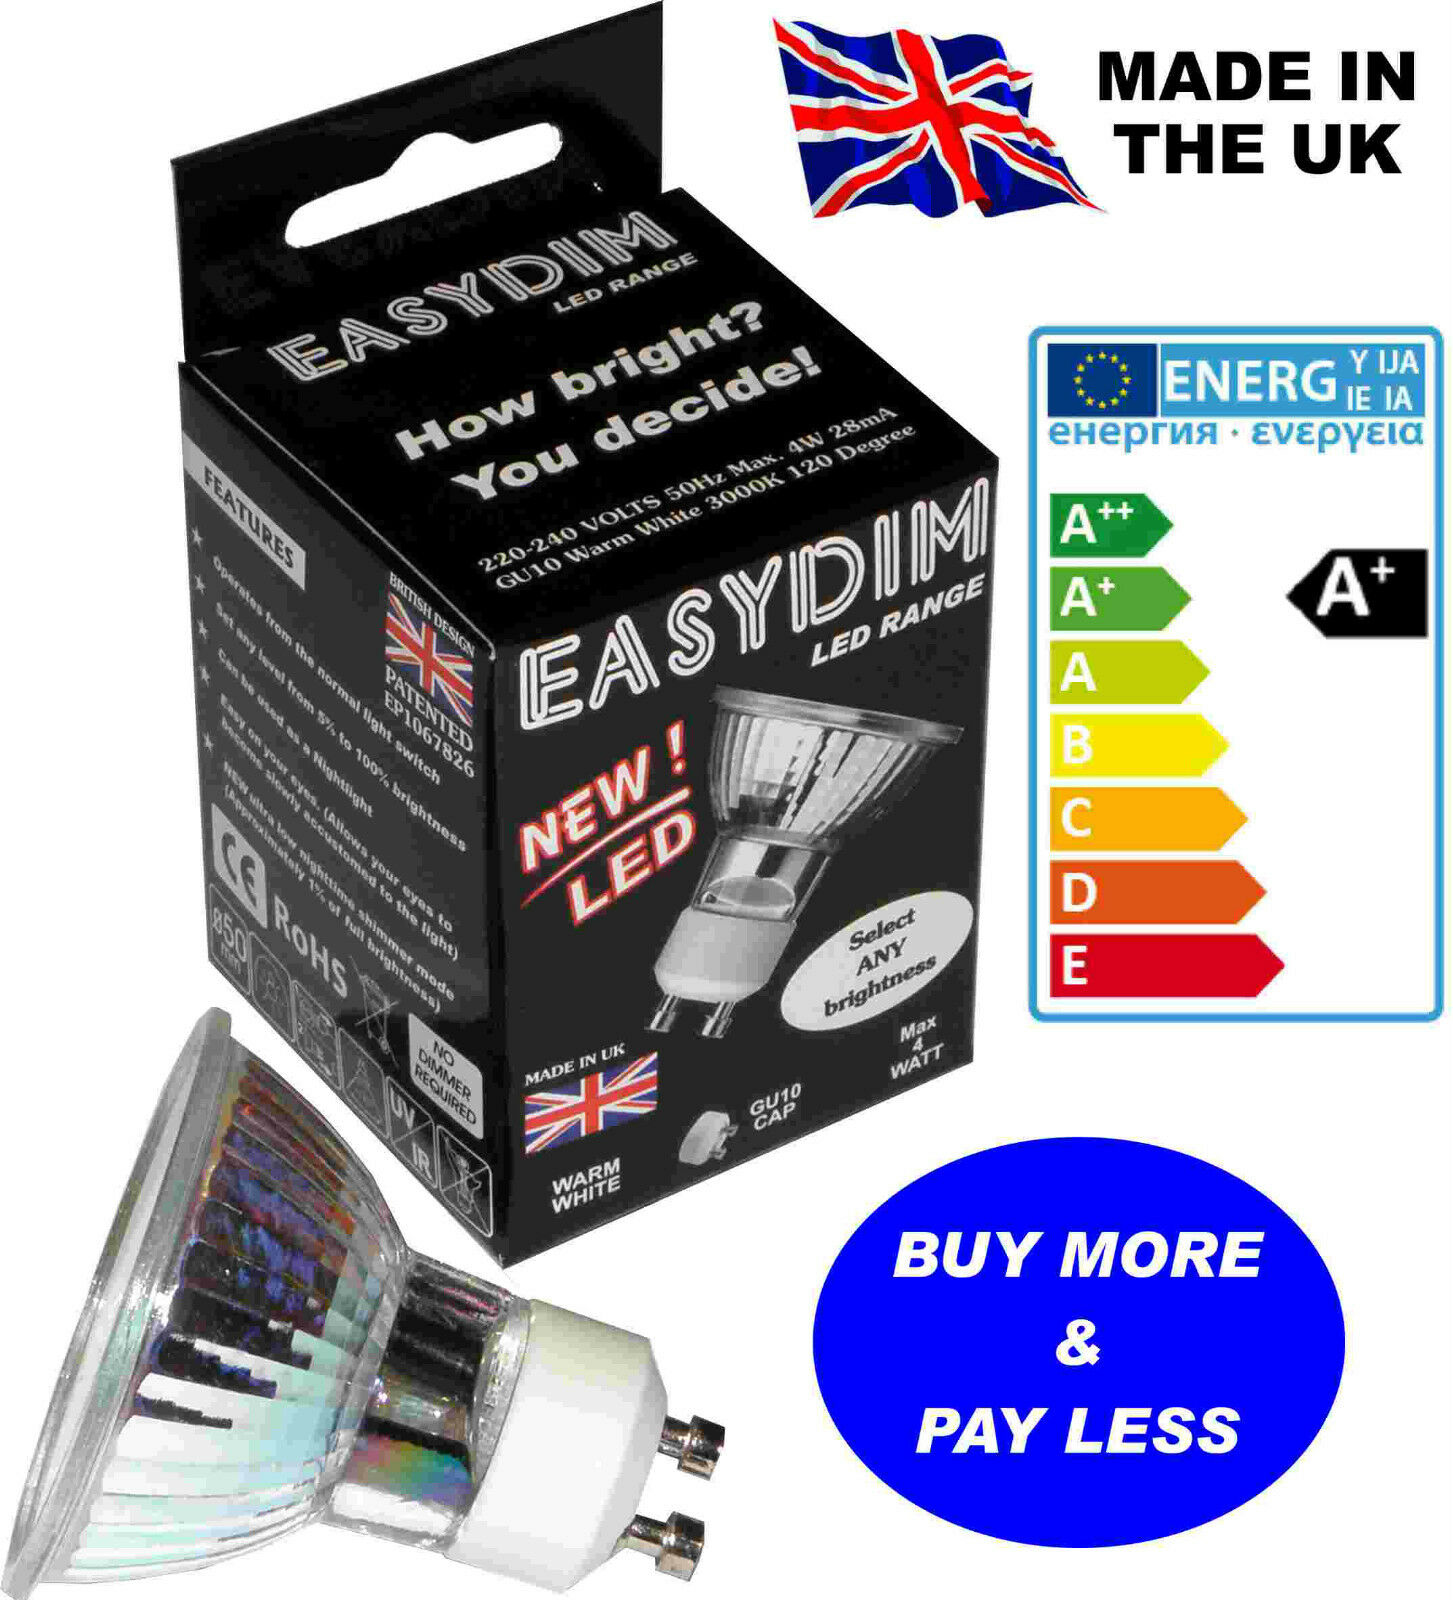 LED spot D I Y WARM mood lighting, dimmable smd lights   bulbs, British CE lamps